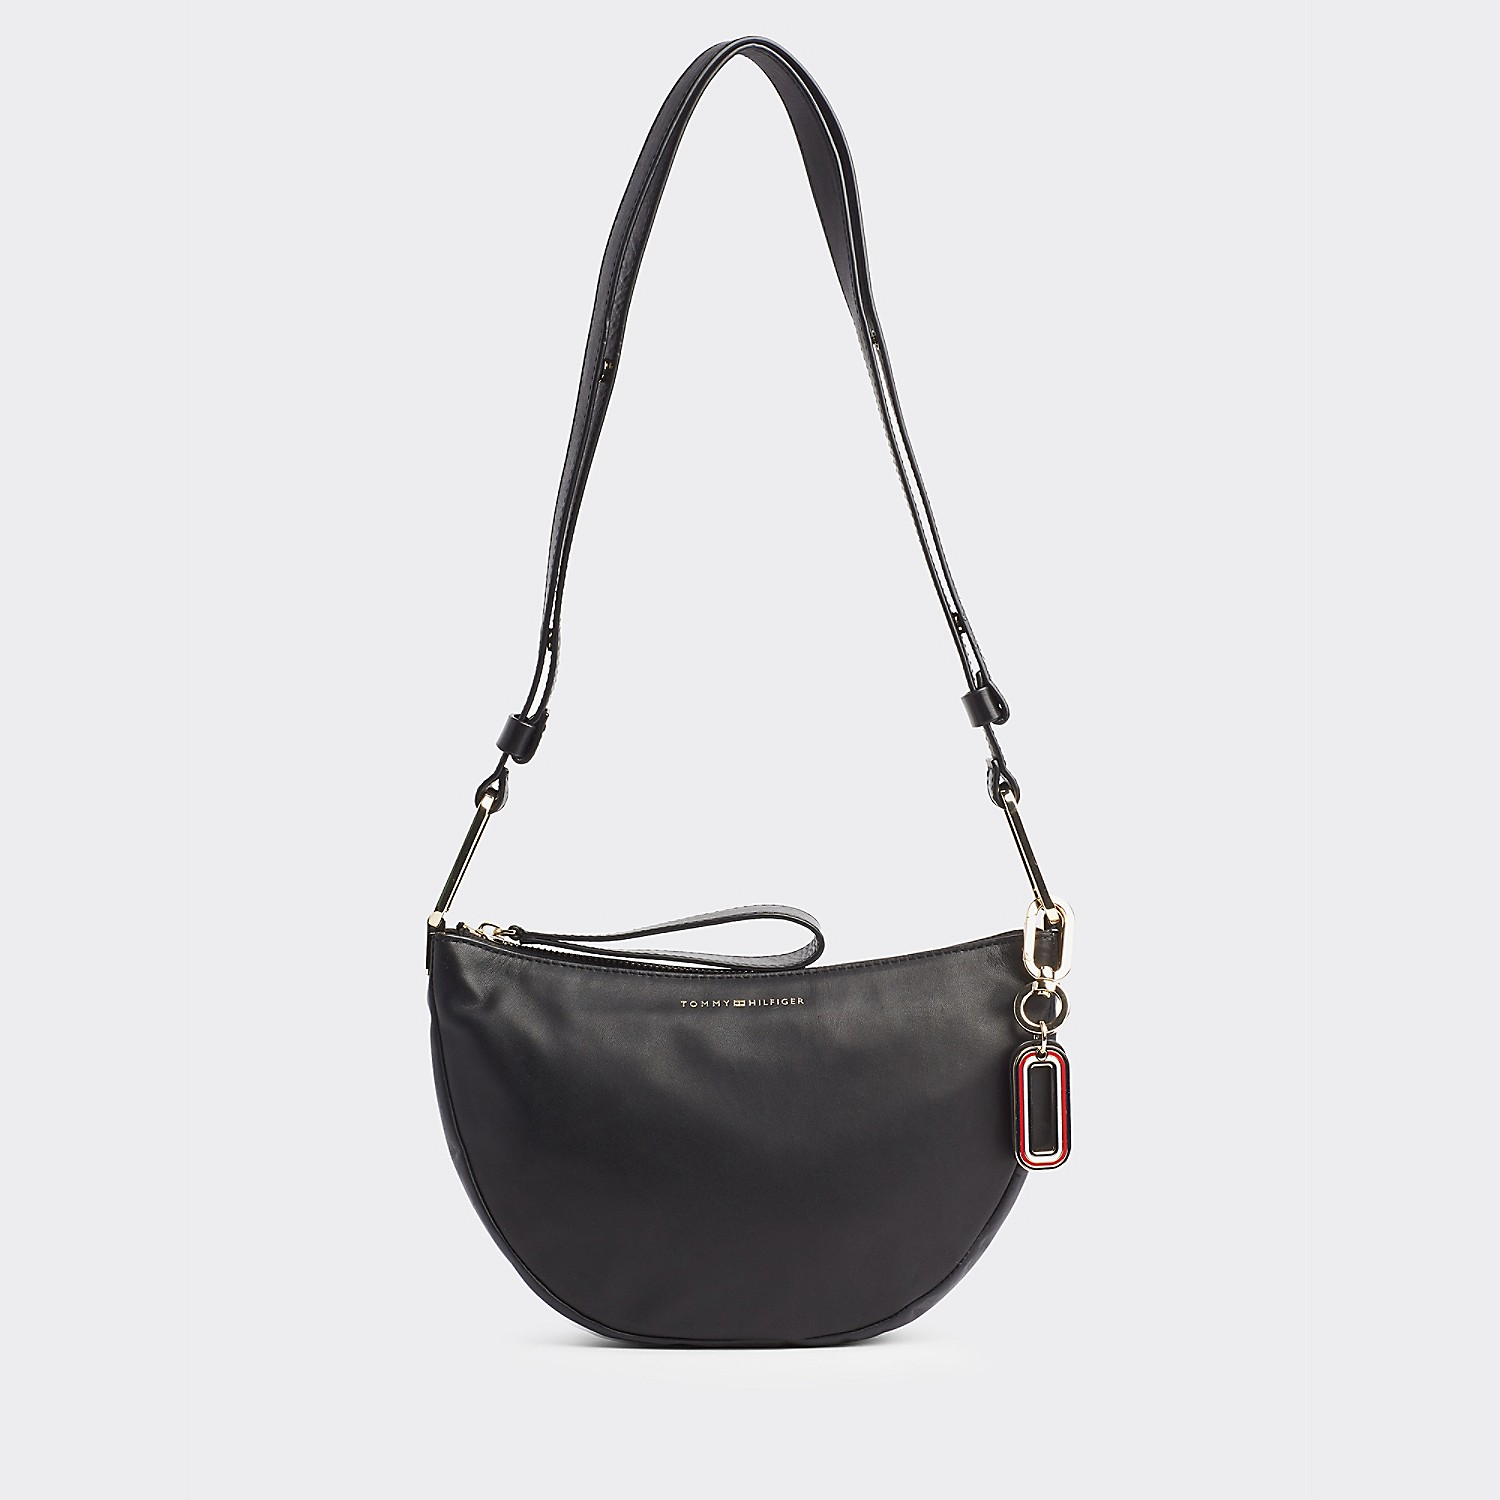 Tommy hilfiger Leather Hobo Crossbody Bag